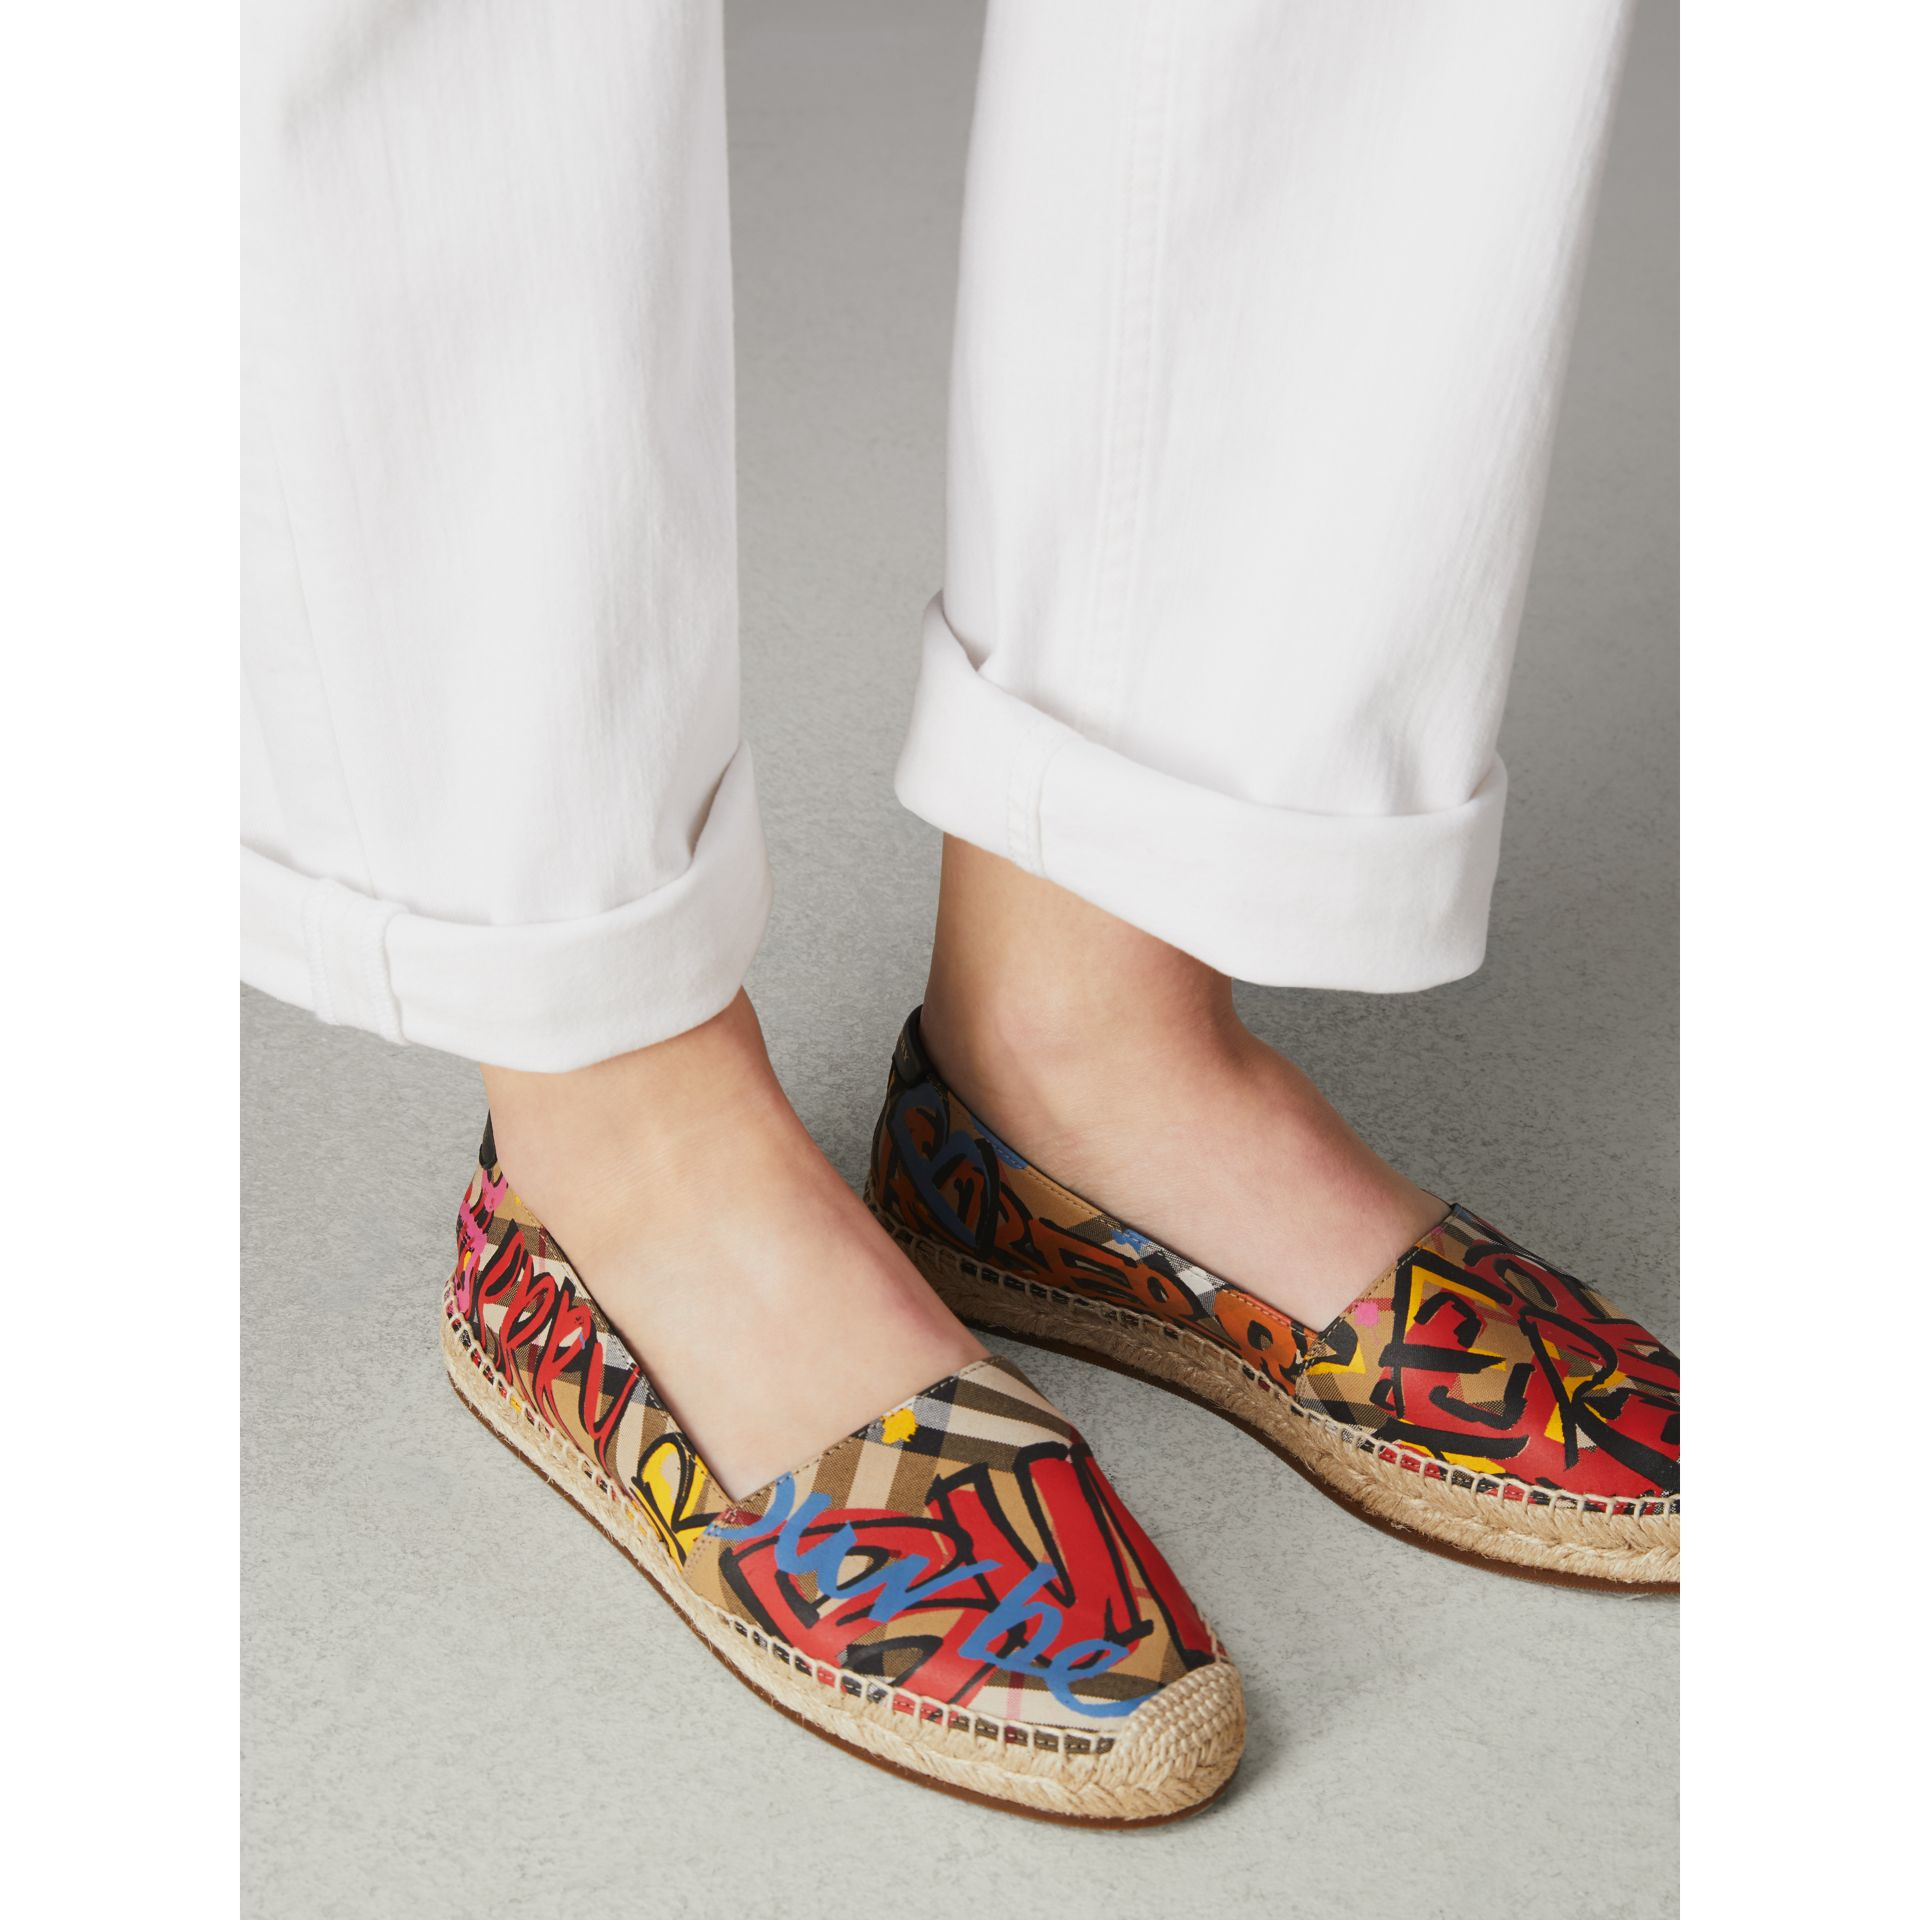 Graffiti Print Vintage Check Espadrilles in Antique Yellow - Women | Burberry Hong Kong - gallery image 2